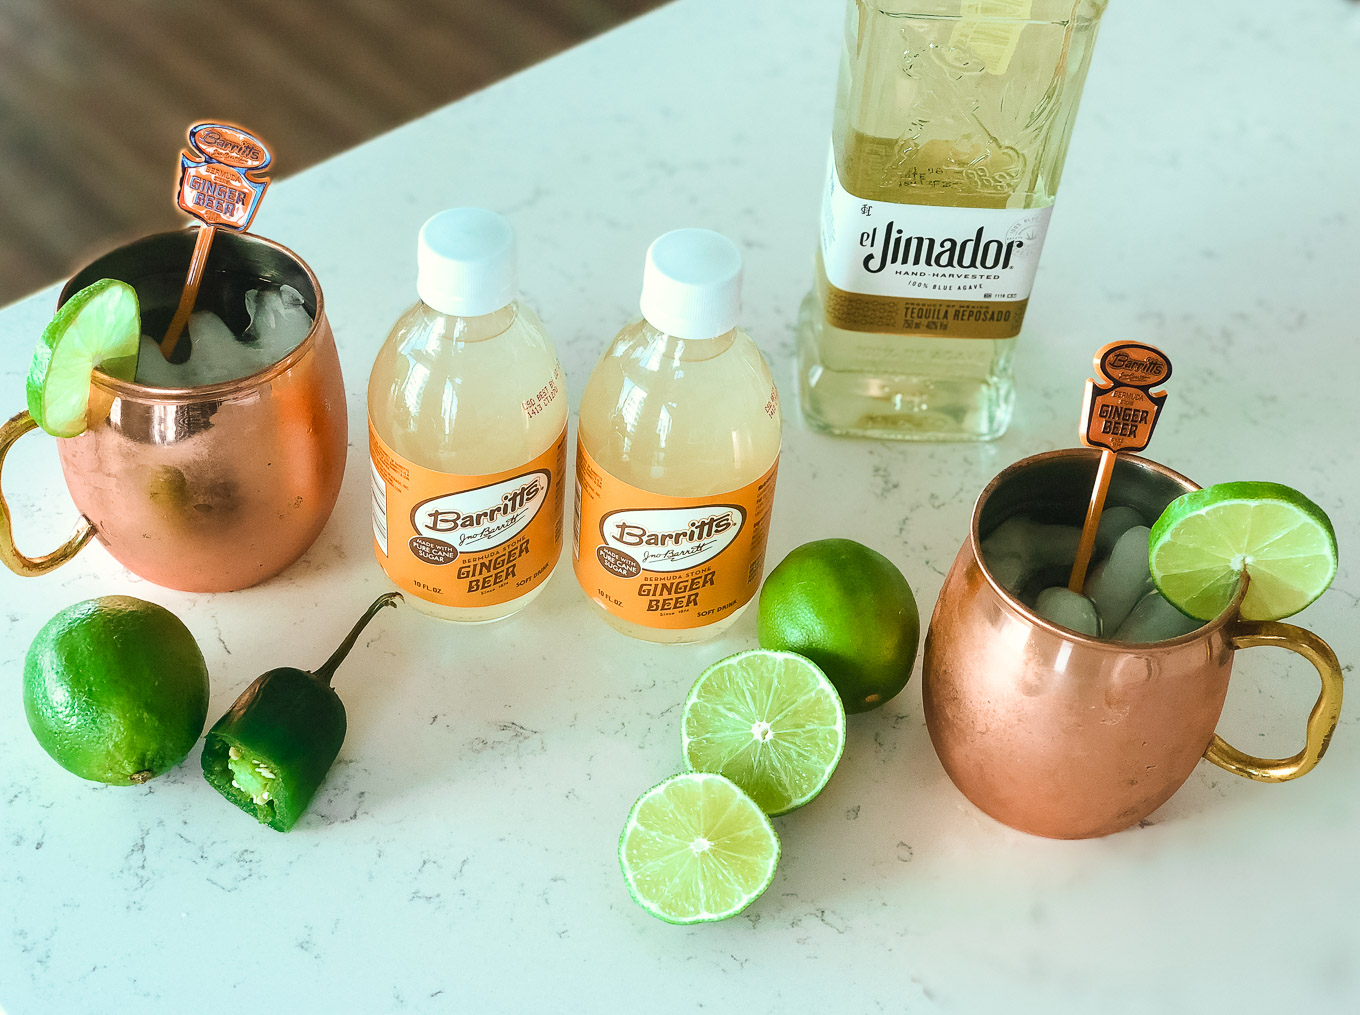 Barritts Ginger Beer Mexican Mule featured by popular Chicago lifestyle blogger Glass of Glam